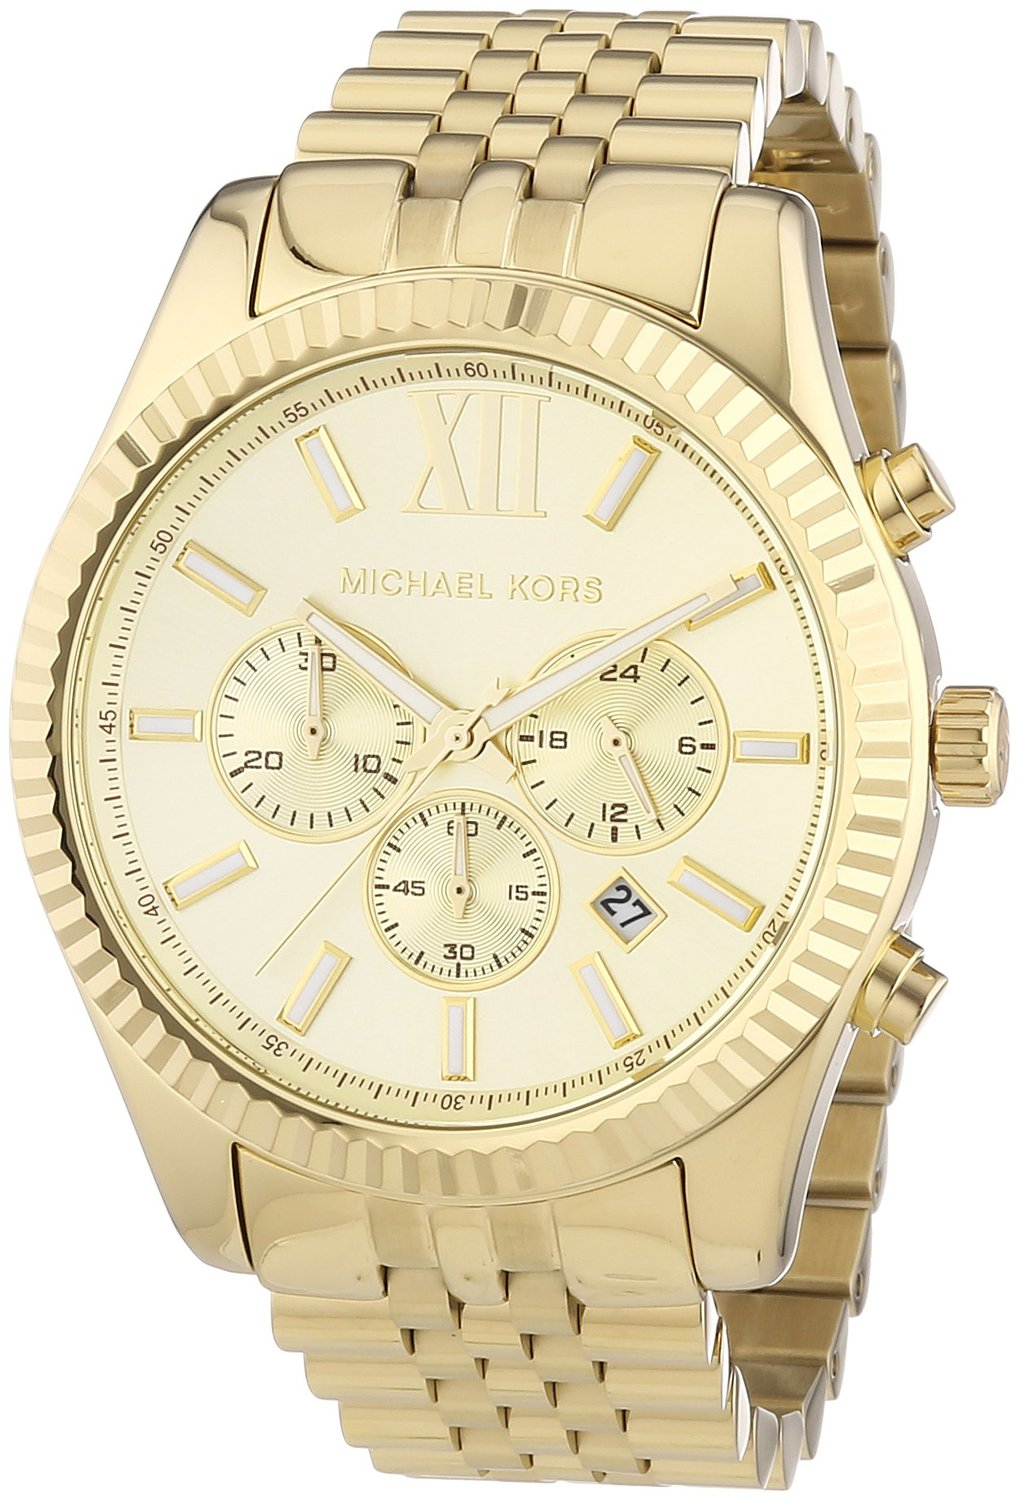 michael kors men s fashion watch mk8281 review the watch blog michael kors mens fashion watch mk8281